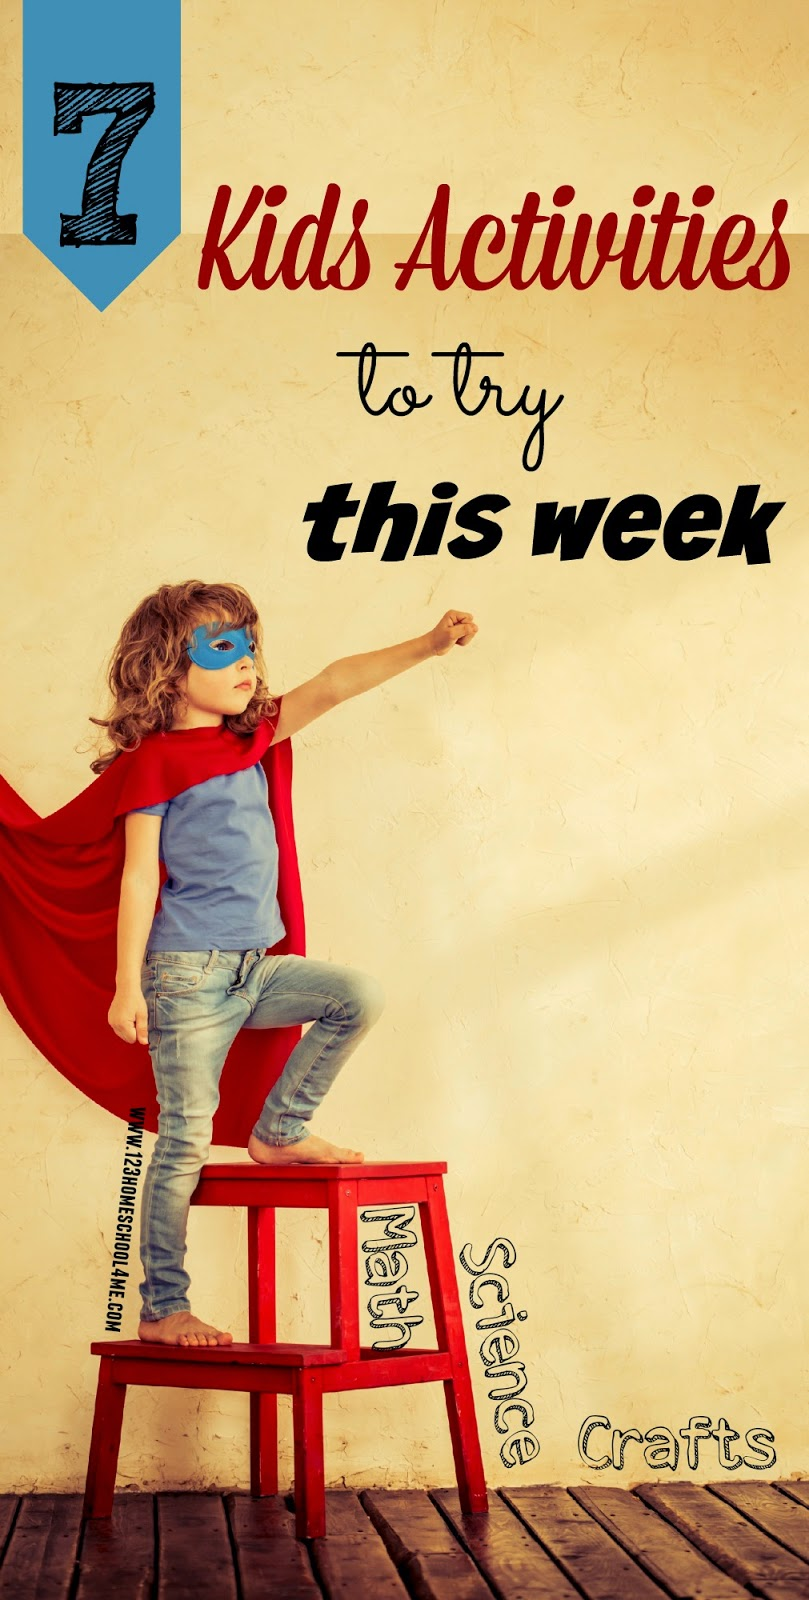 7 Kids Activities to Try This Week - Science experiments. Pasta Math, Flower Crafts, Big Hero 6 and other fun ideas kid of all ages will love.